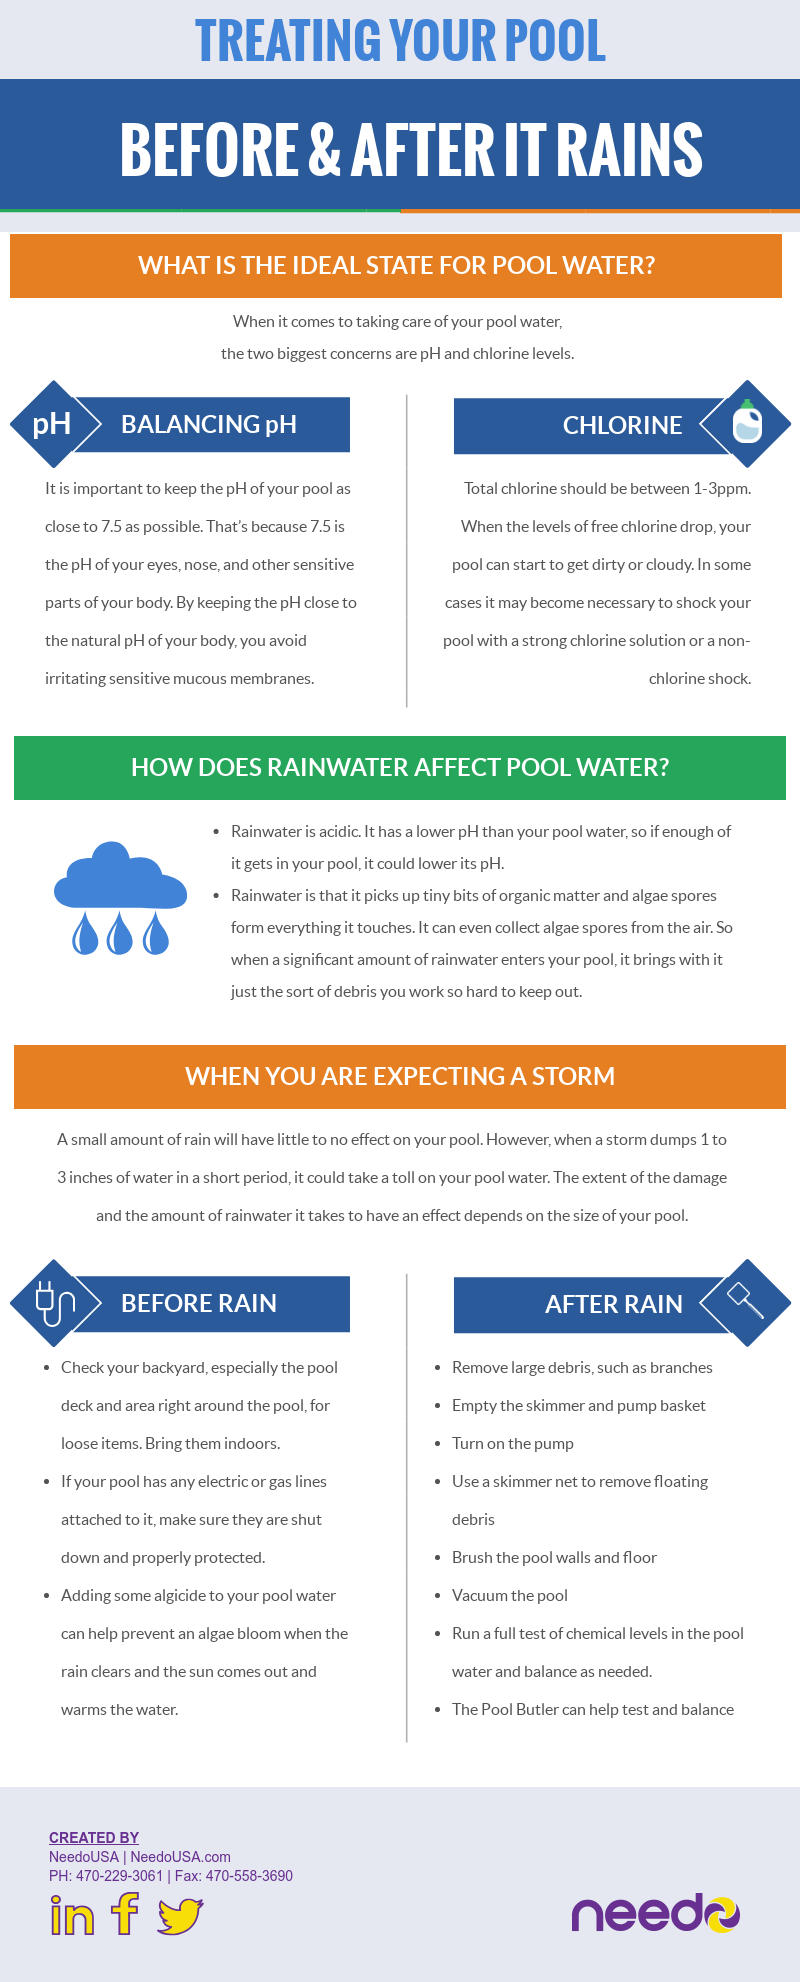 Treating Your Pool Before and After it Rains [infographic]